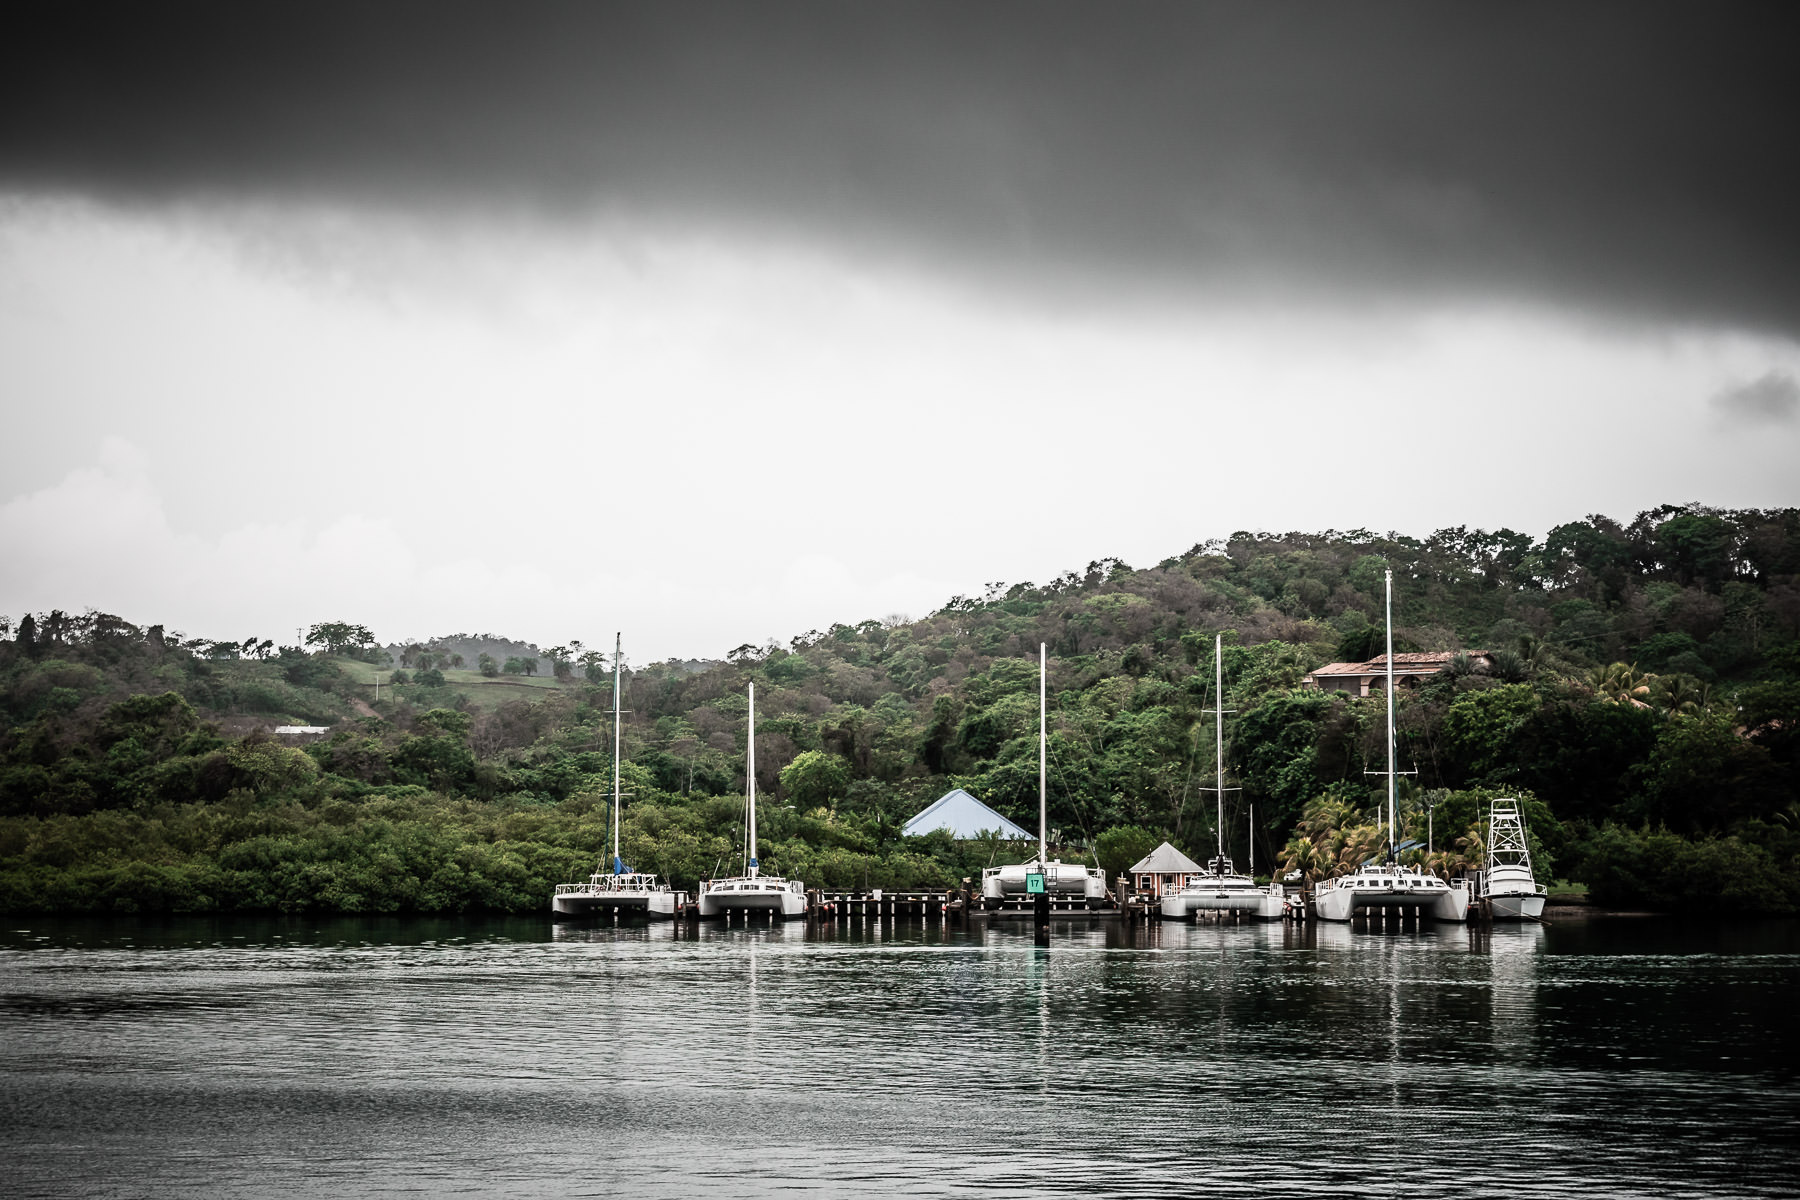 Sailboats docked at pier on the island of Roatán, Honduras, on a rainy, overcast day.